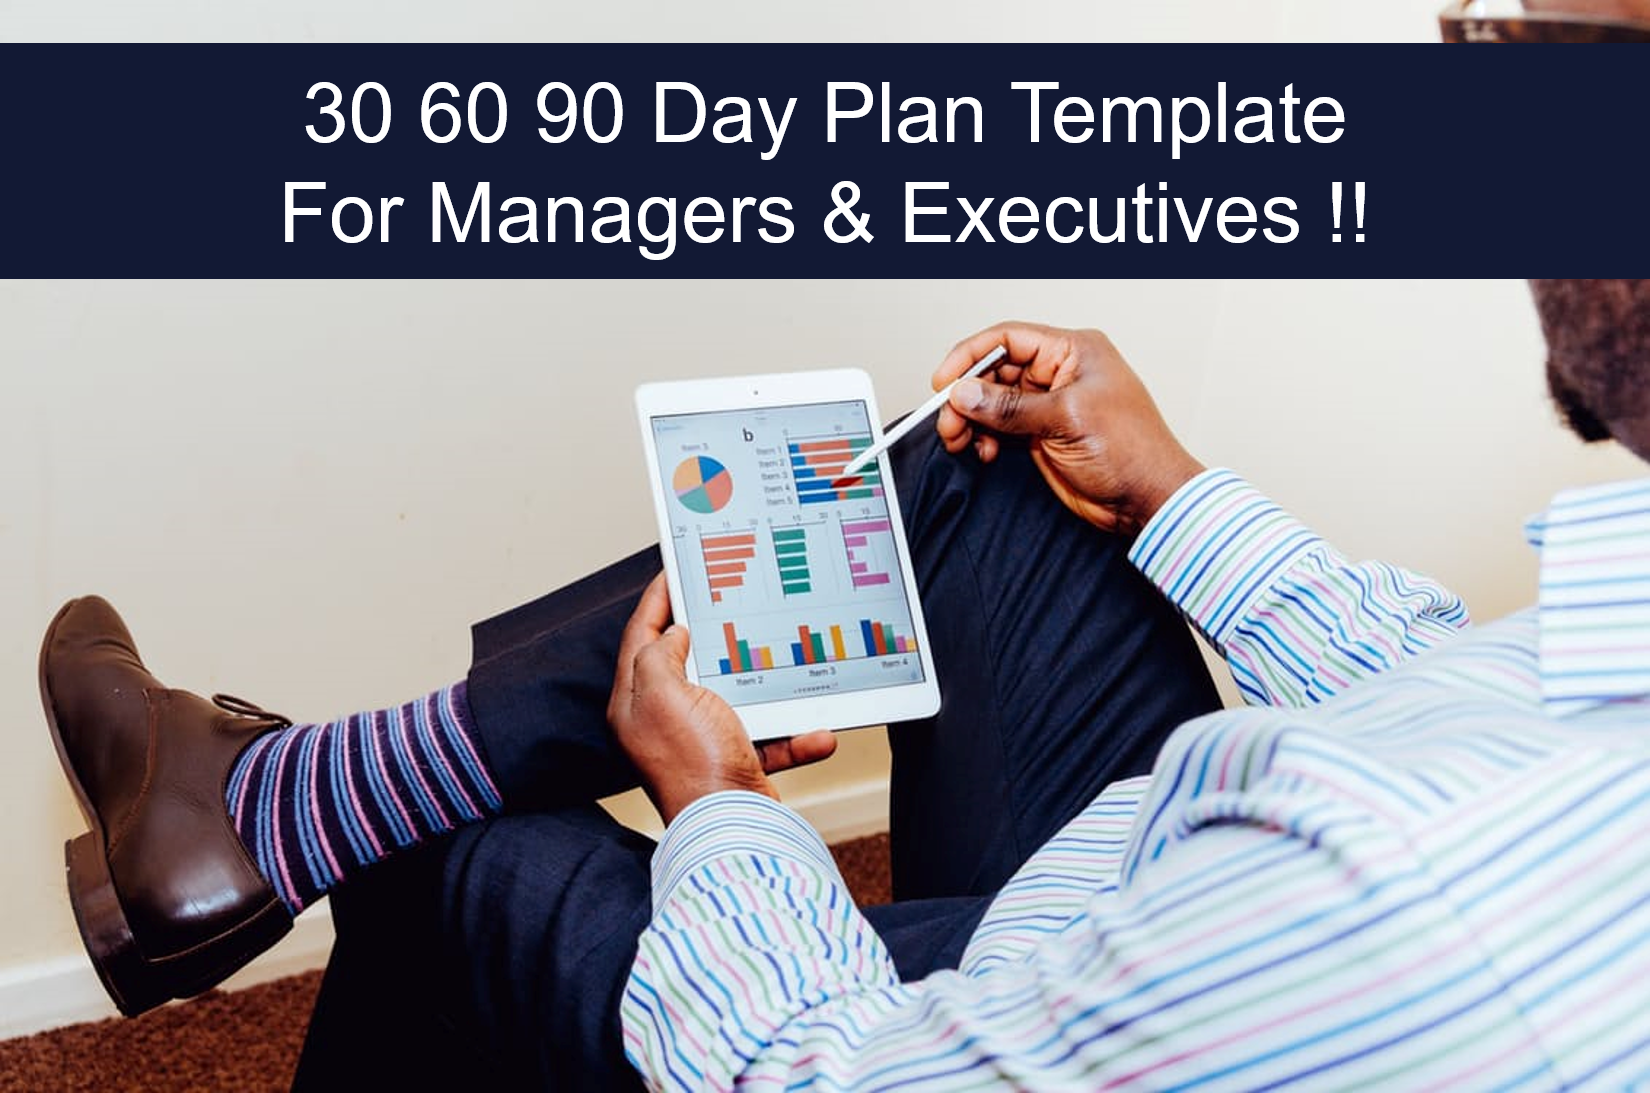 30 60 90 day plan for managers